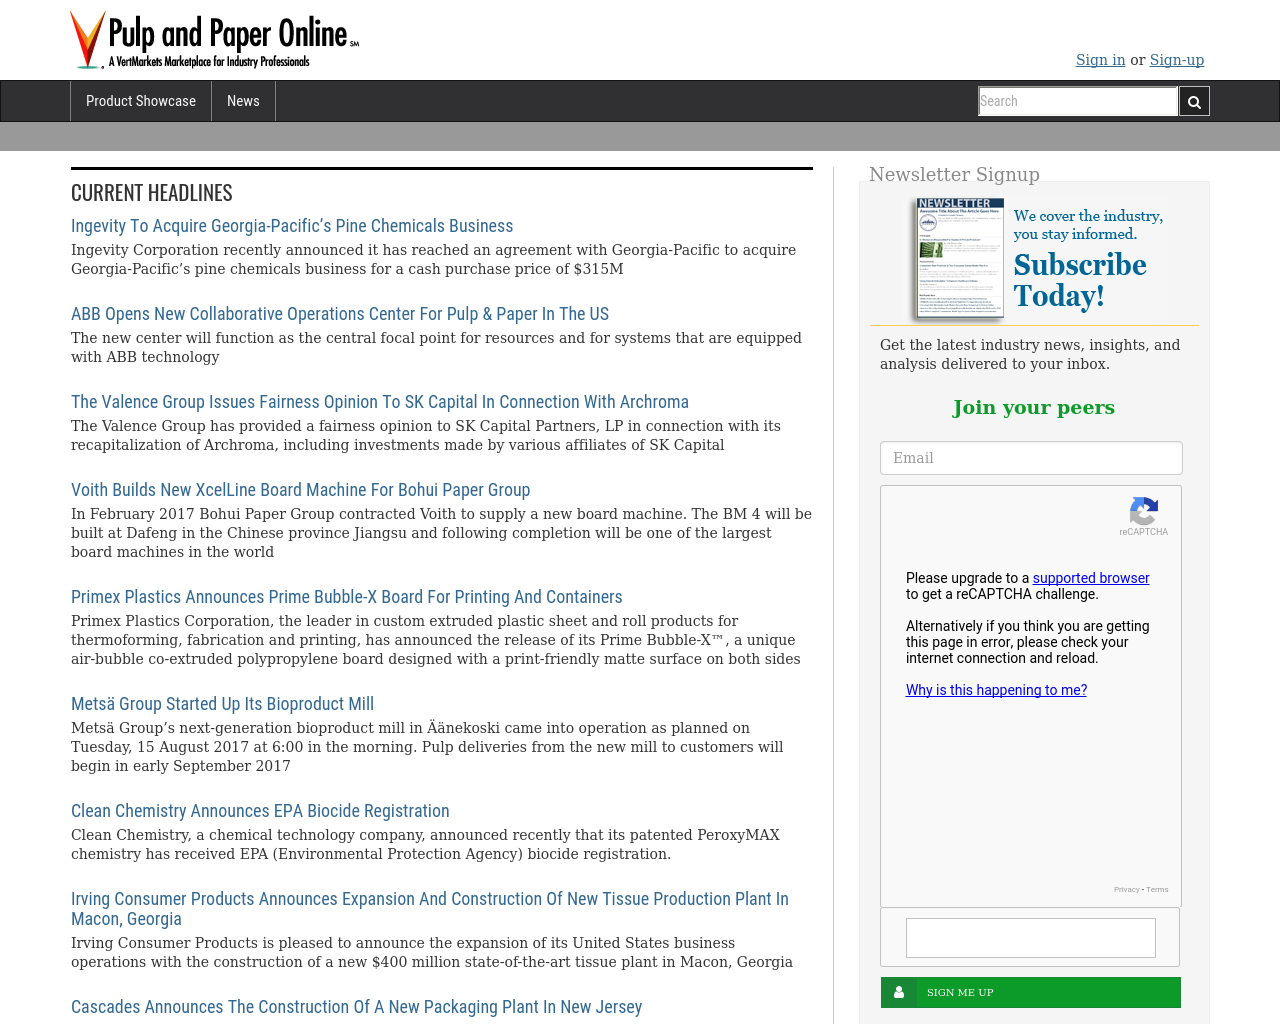 Pulp-and-Paper-Online-Advertising-Reviews-Pricing